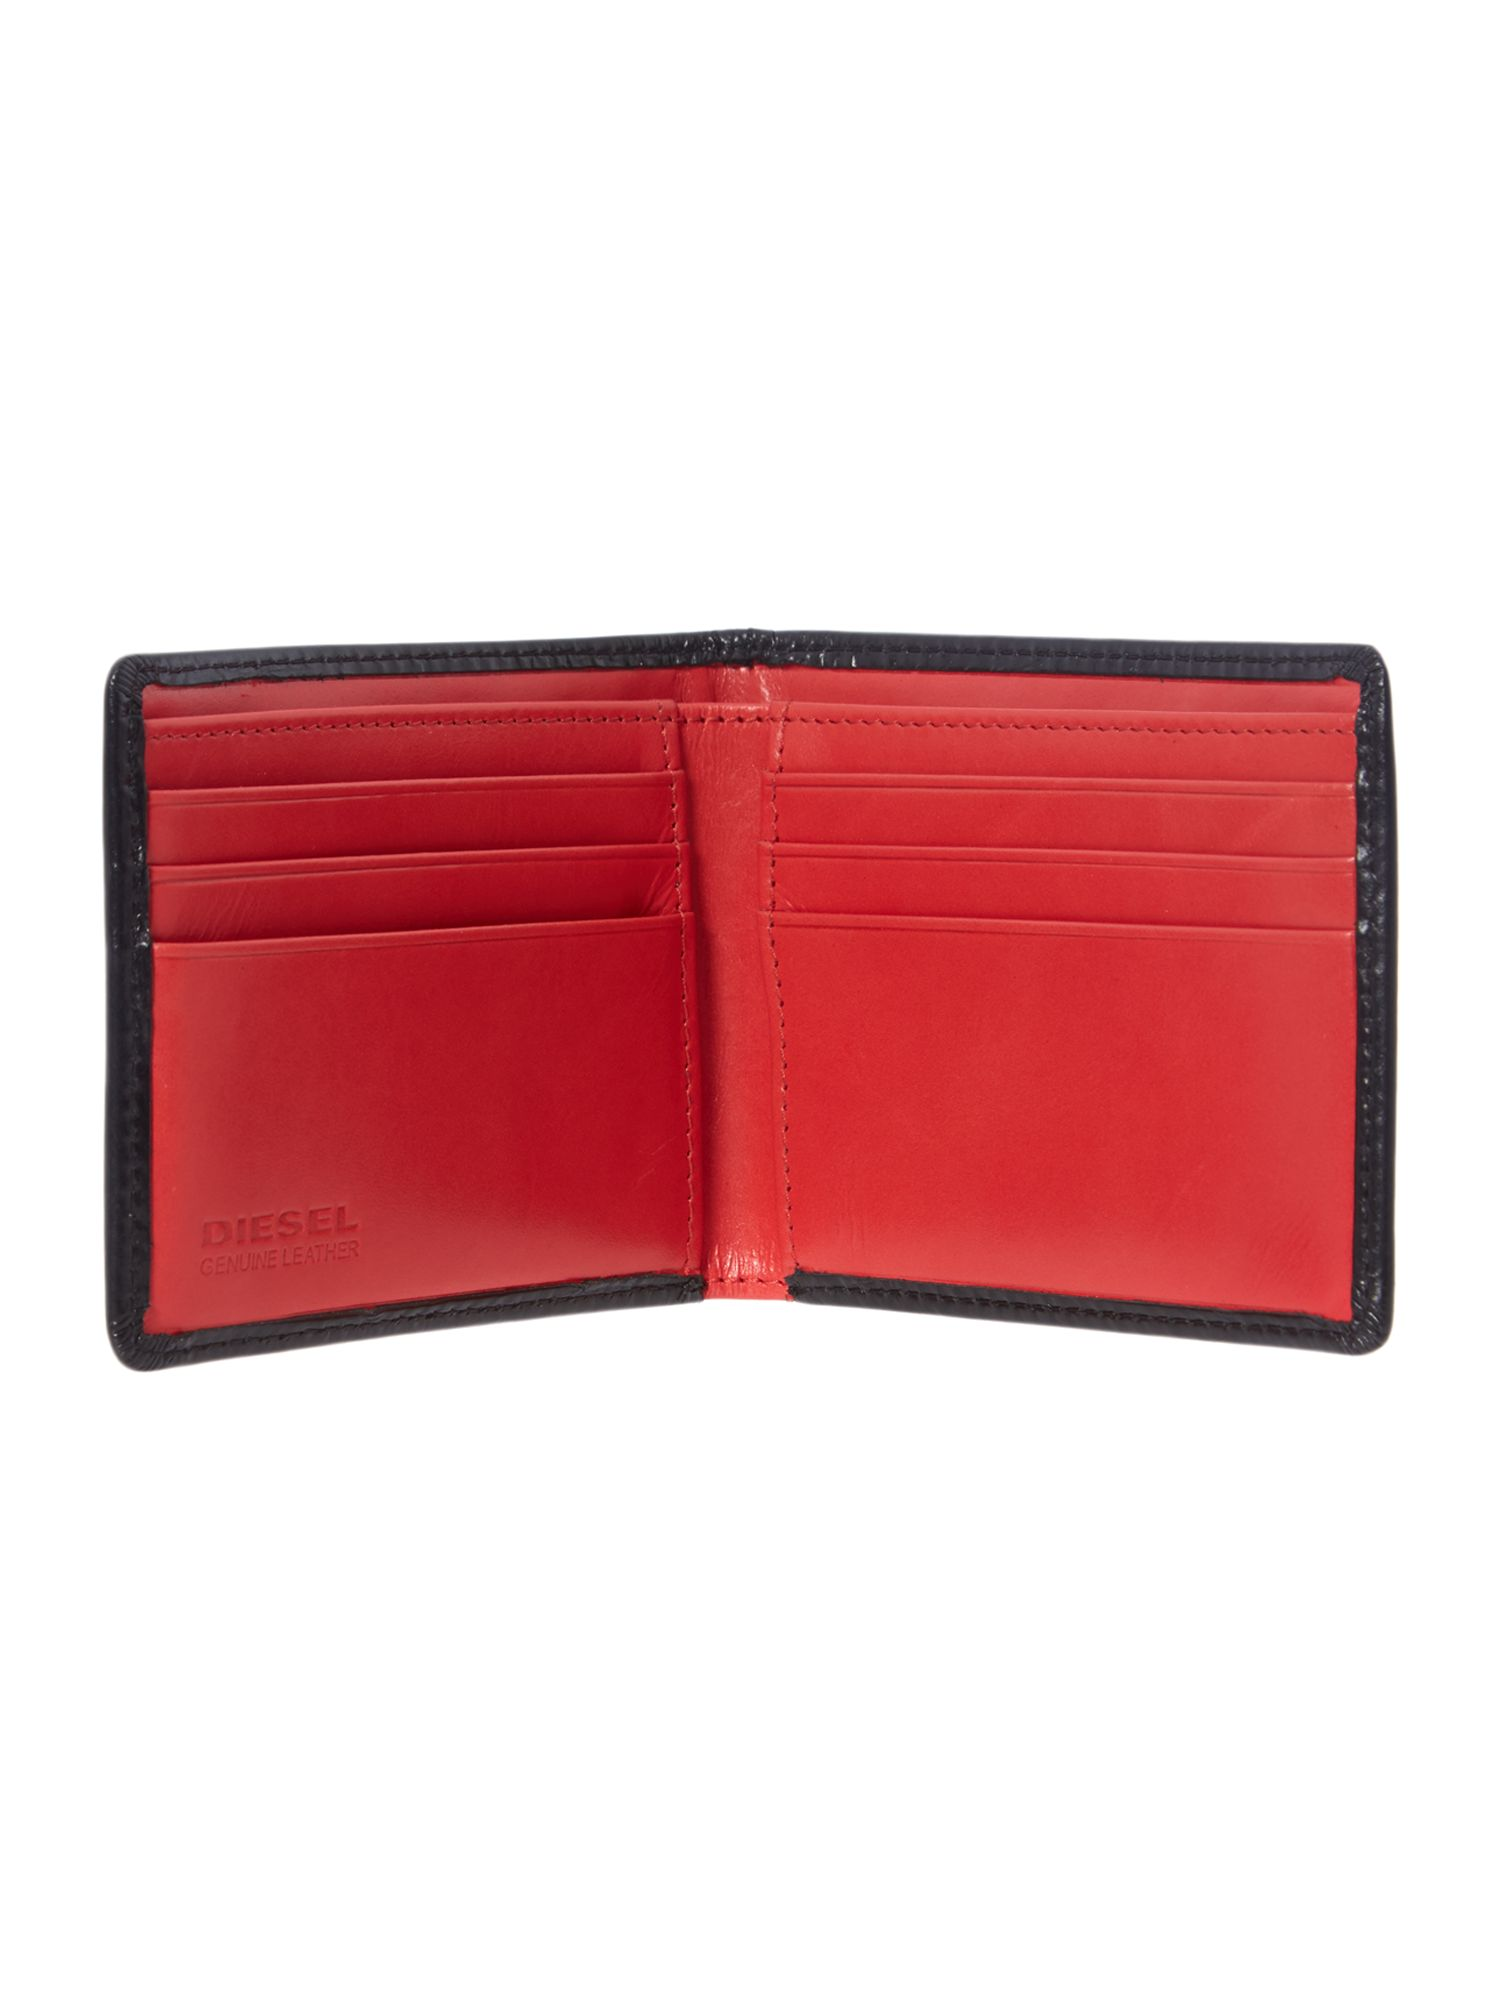 Neela colour block billfold wallet